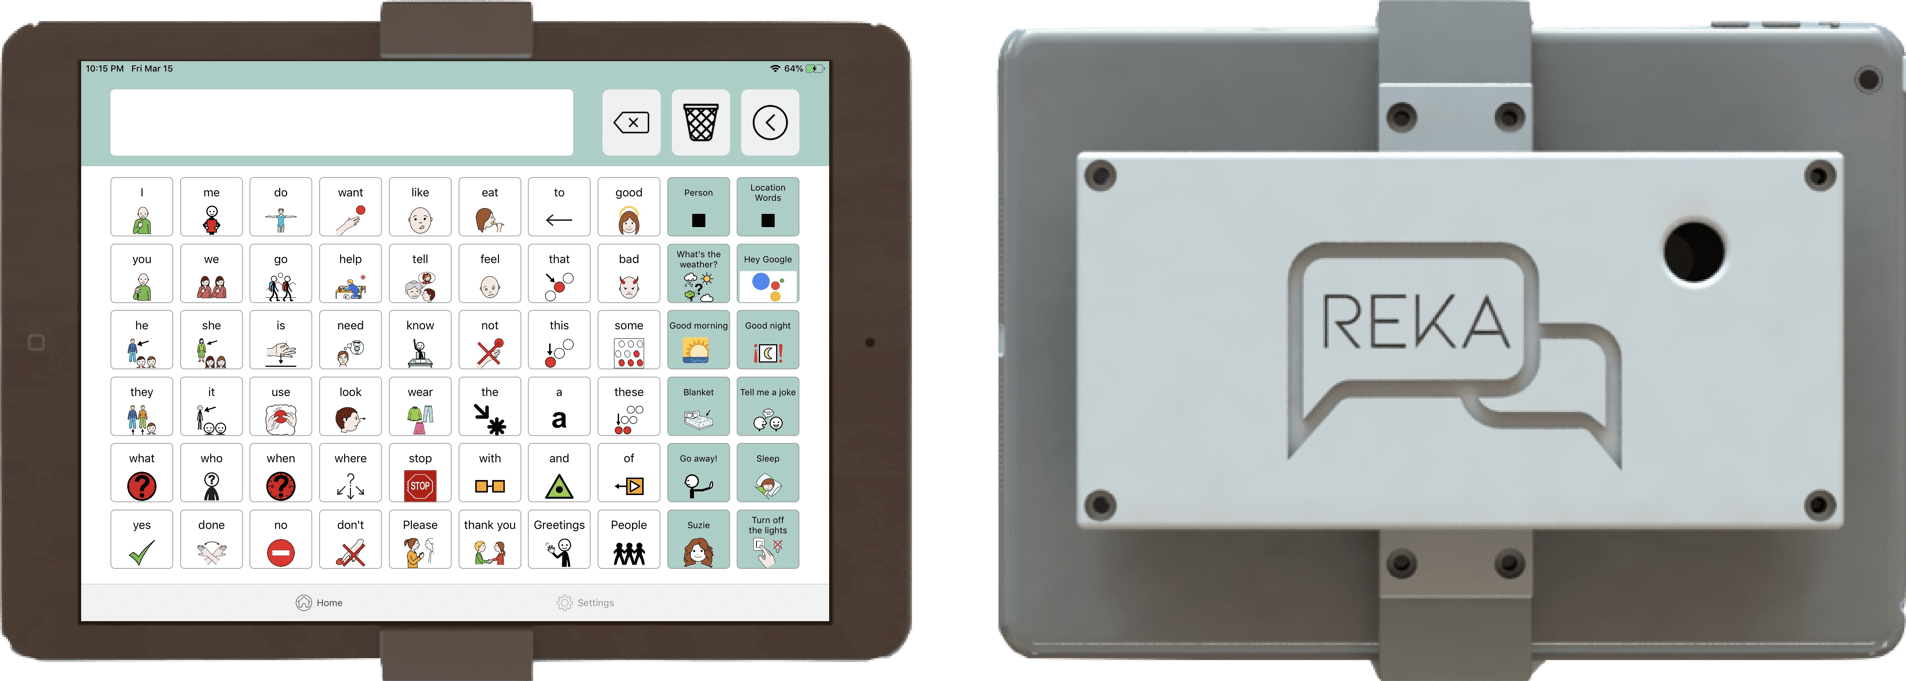 Reka provides contextual based vocabulary suggestions to the user based on information collected using sensors located in the hardware module, which can be mounted to the back of the user's tablet.